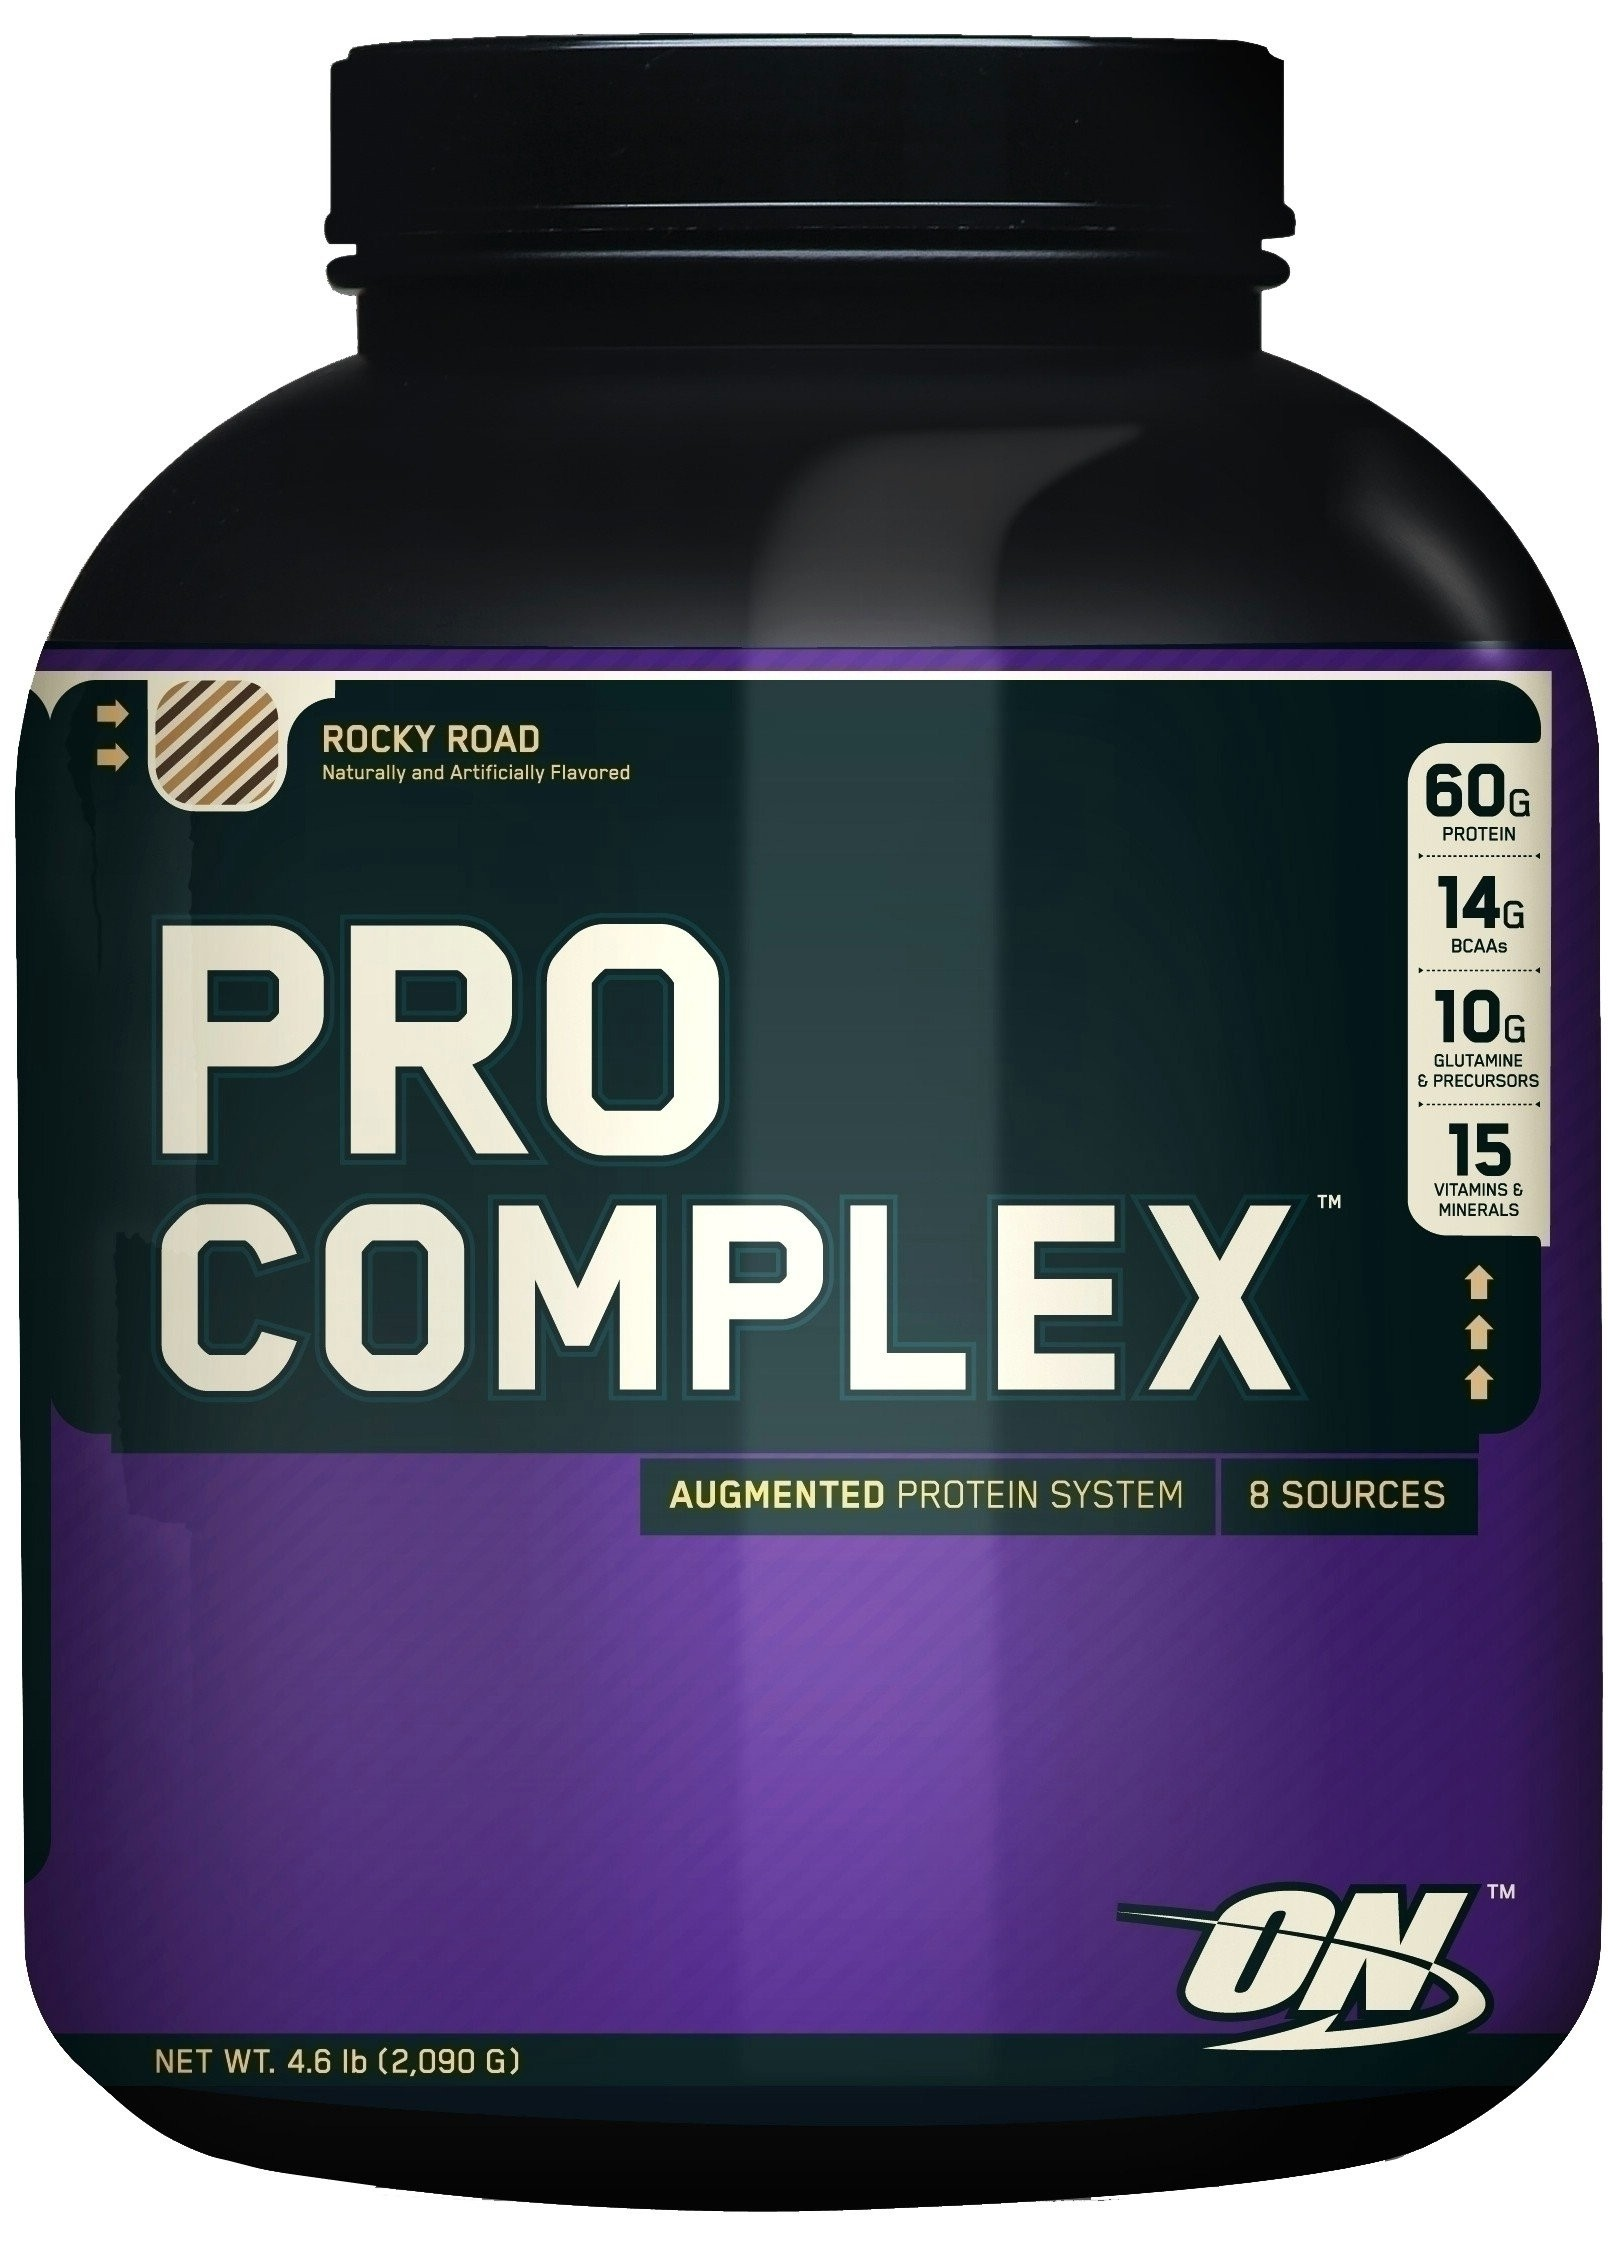 Optimum Nutrition Pro Complex Review - The Perfect Protein